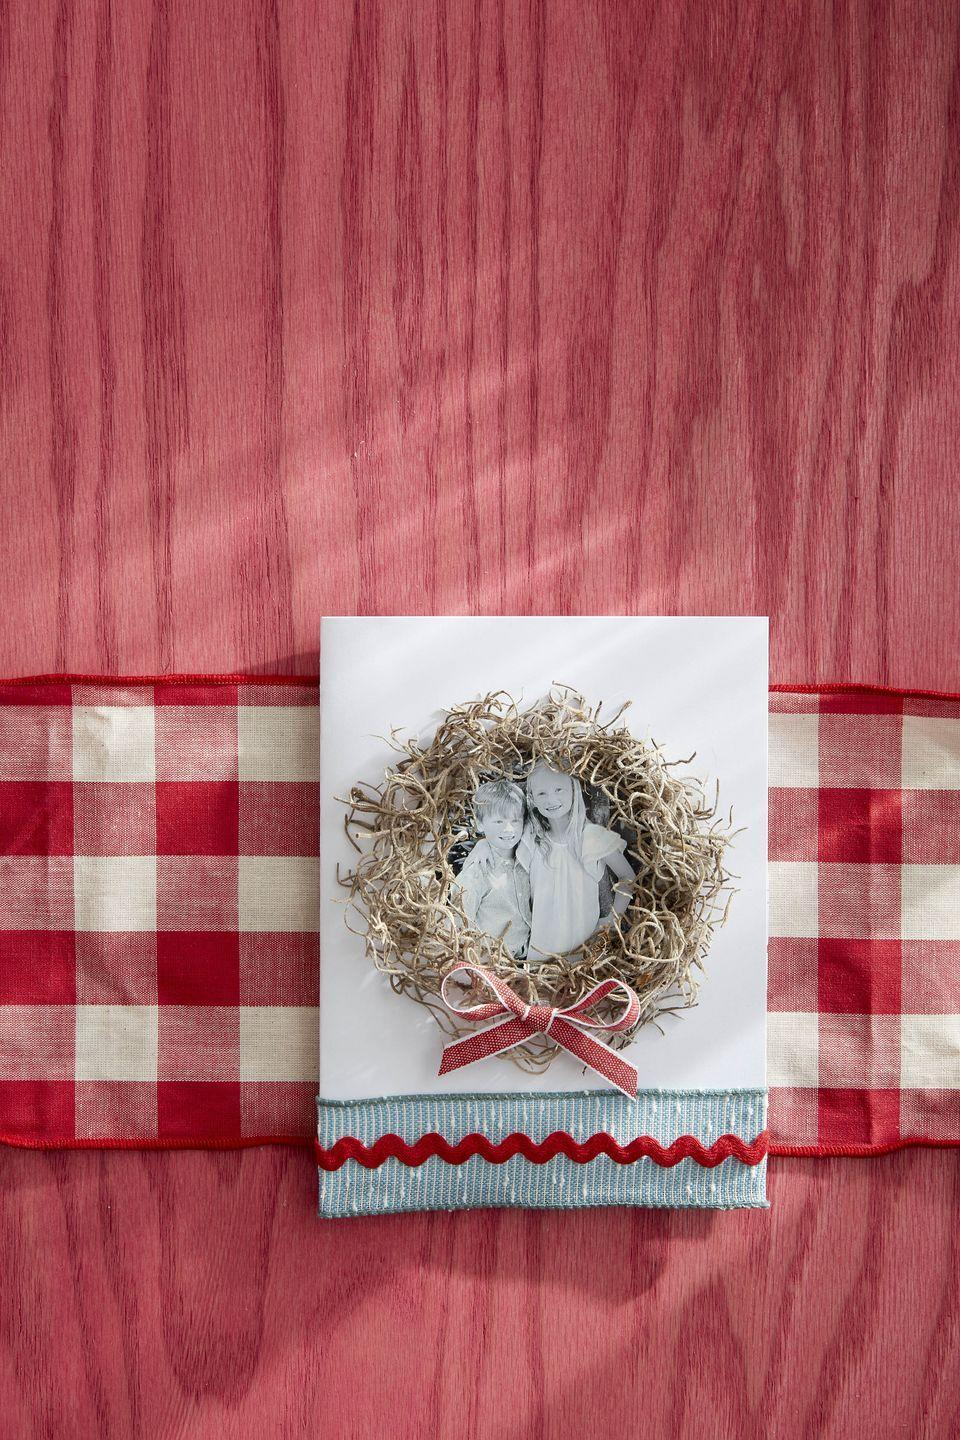 """<p>Send greetings from the kids or the whole family by making this photo card with it's natural Spanish moss wreath accent.</p><p><strong>To make:</strong> Cut a black-and-white photograph of the kids, pets, or the entire family in a circle; glue to the front of a plain card. Attach lengths of Spanish moss around the picture with hot glue to create a wreath. Attach a mini bow to the bottom of the wreath with hot glue. Add a ribbon and rick rack flair to the bottom of the card.</p><p><a class=""""link rapid-noclick-resp"""" href=""""https://www.amazon.com/SuperMoss-26911-Spanish-Moss-Natural/dp/B00I6AJ57A/ref=sr_1_1_sspa?tag=syn-yahoo-20&ascsubtag=%5Bartid%7C10050.g.3872%5Bsrc%7Cyahoo-us"""" rel=""""nofollow noopener"""" target=""""_blank"""" data-ylk=""""slk:SHOP SPANISH MOSS"""">SHOP SPANISH MOSS</a></p>"""